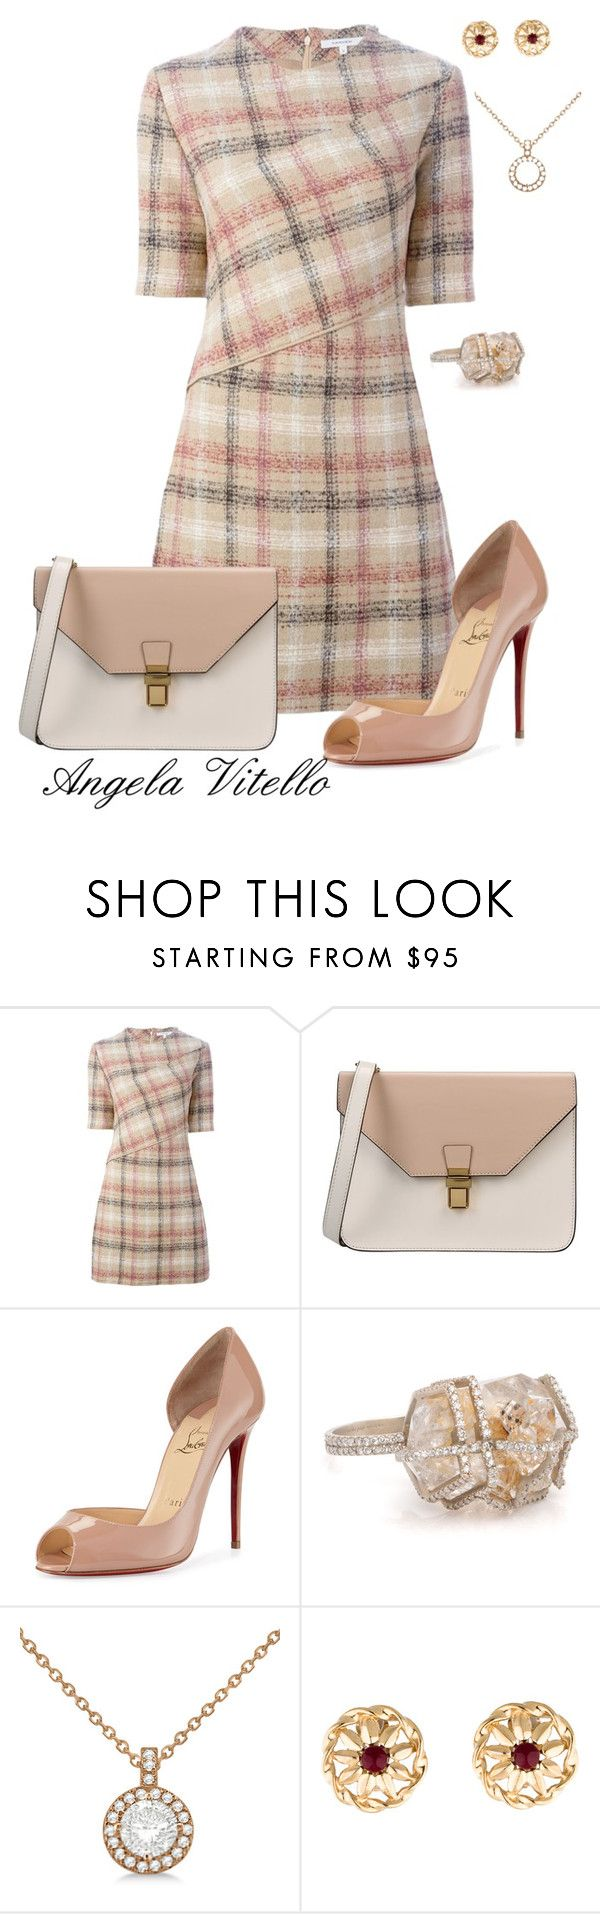 """""""Untitled #625"""" by angela-vitello on Polyvore featuring Carven, 8, Christian Louboutin, Allurez and Givenchy"""